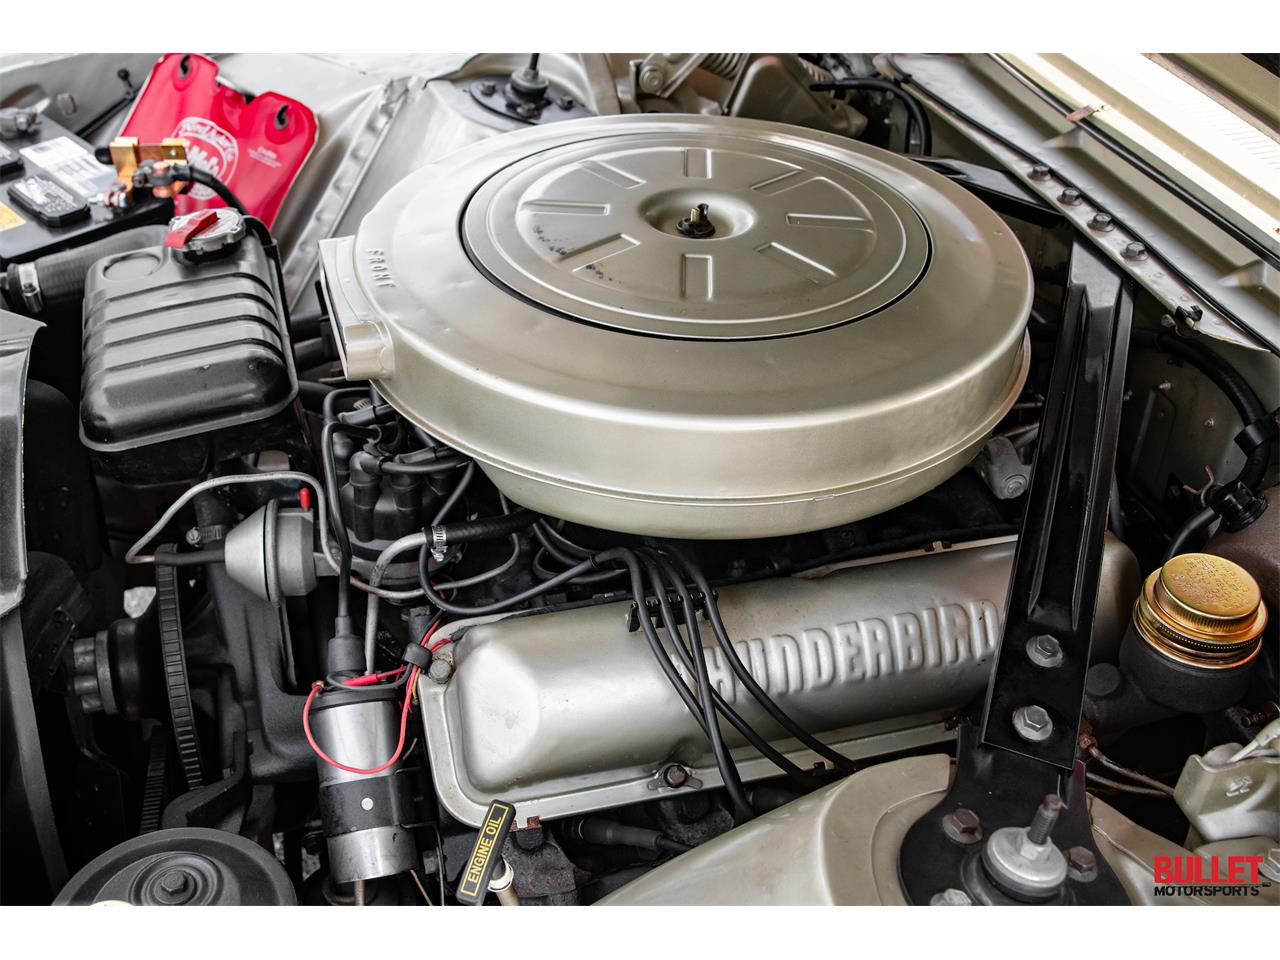 Large Picture of 1962 Ford Thunderbird located in Florida Offered by Bullet Motorsports Inc - PSKN